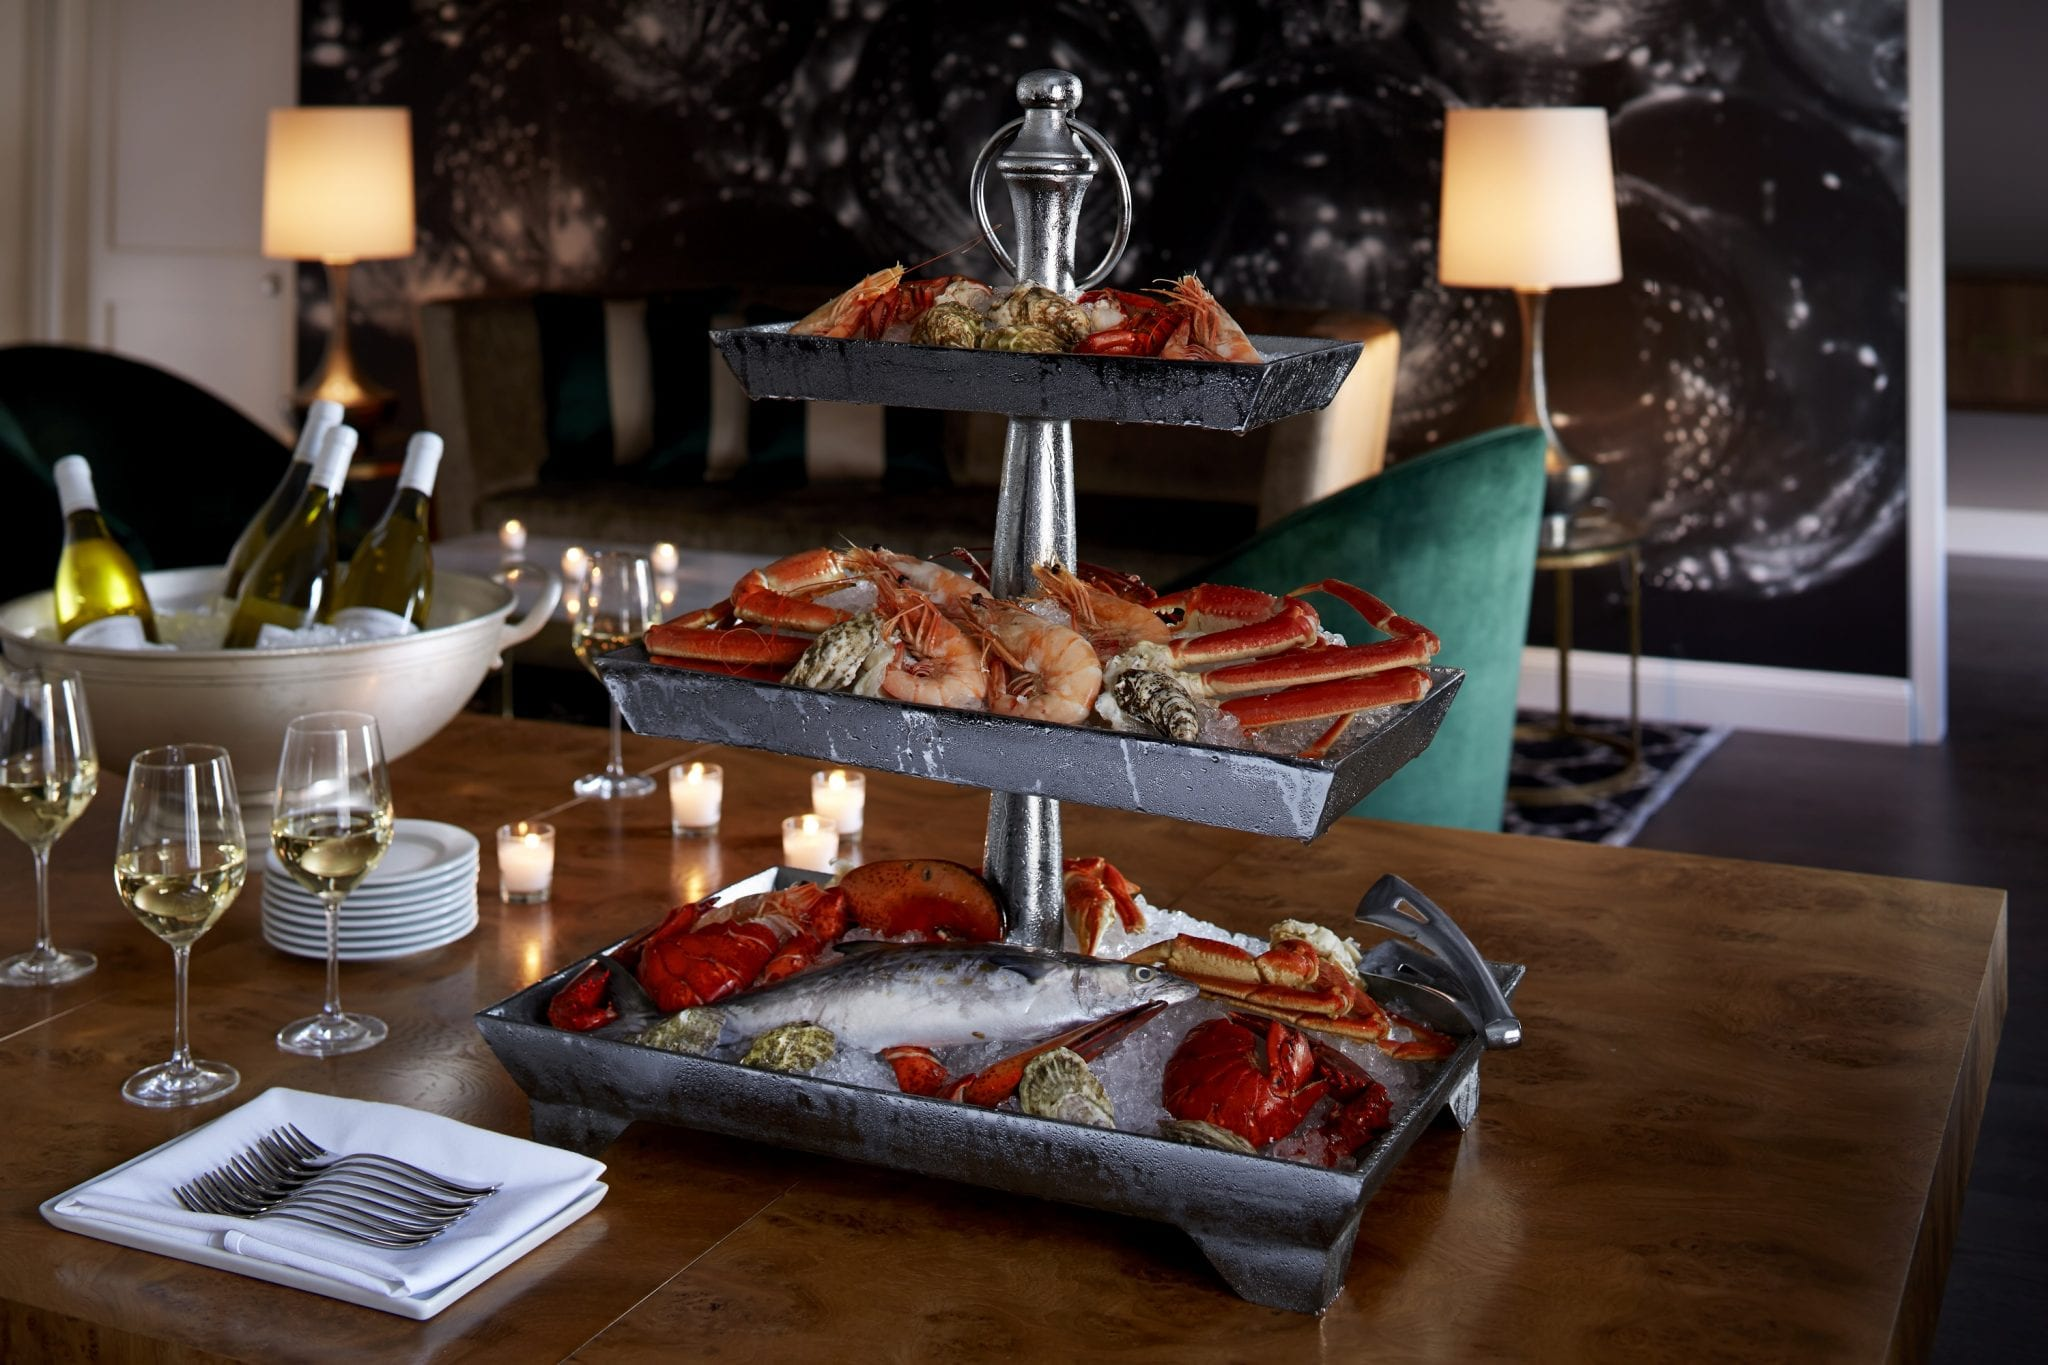 An in-room dining seafood platter with white wine at The Benjamin Hotel in NYC